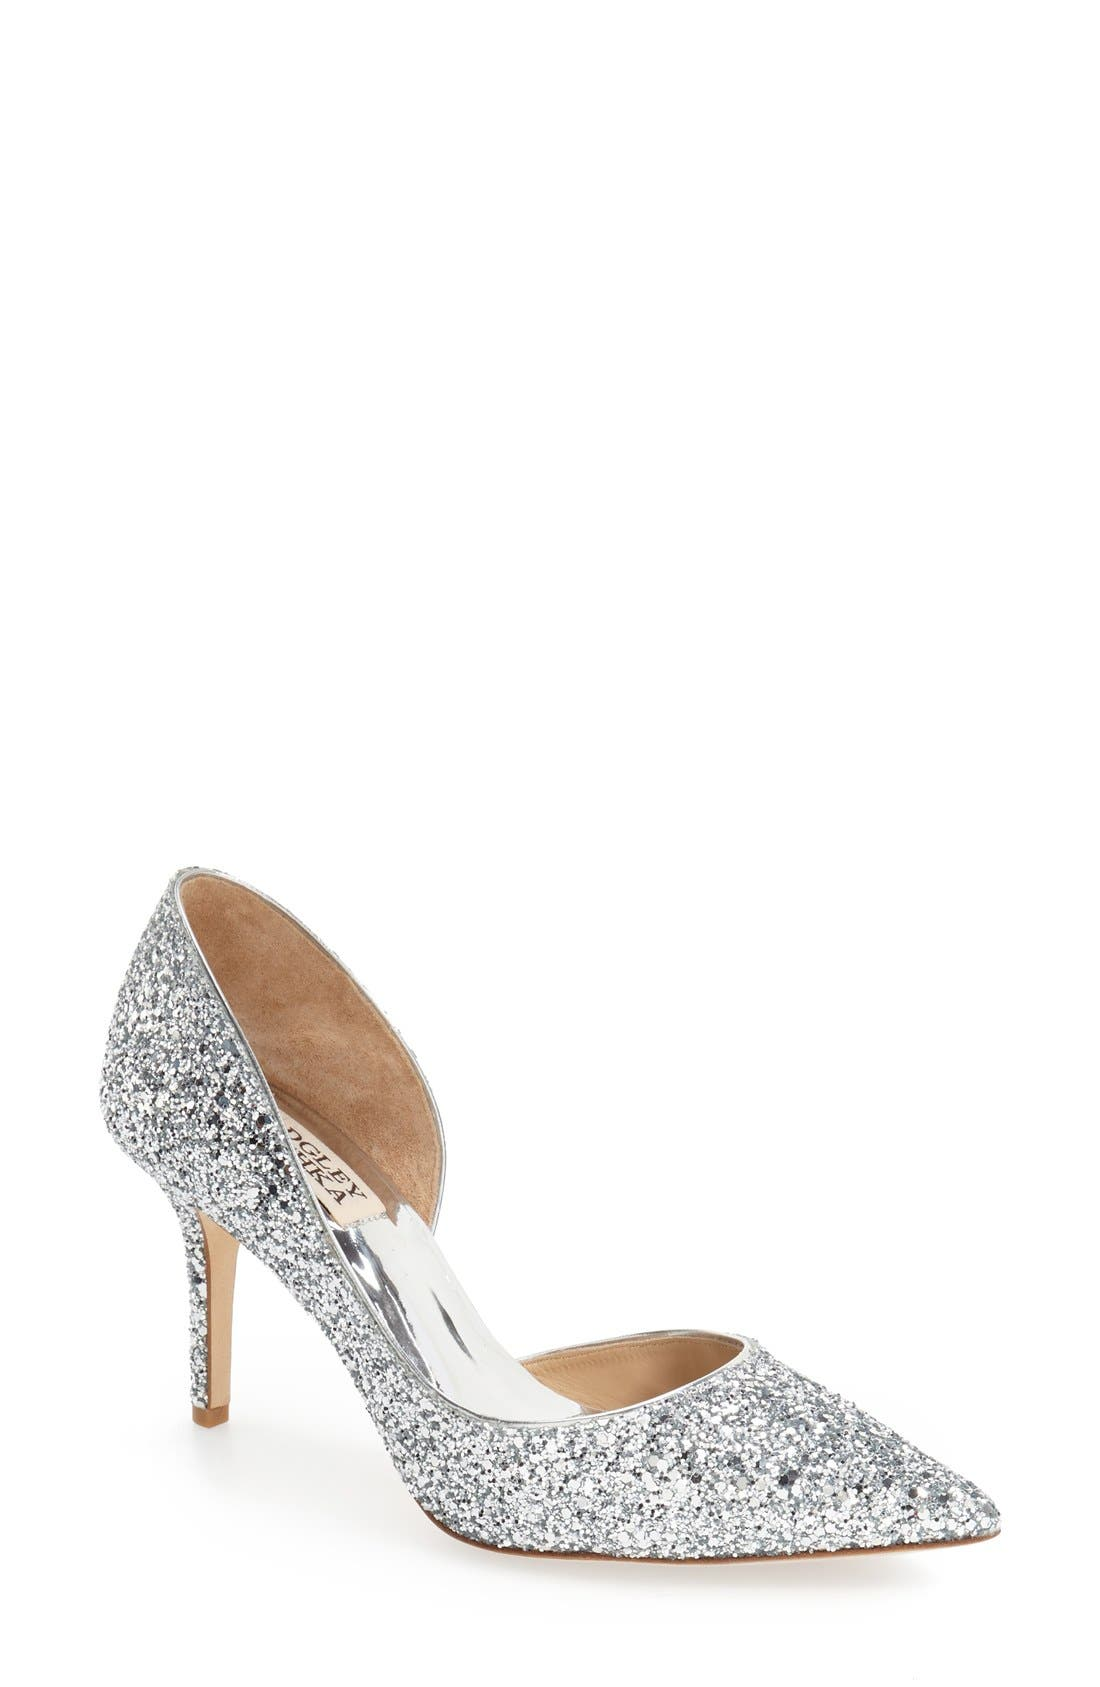 'Daisy' Embellished Pointy Toe Pump,                         Main,                         color, Silver Glitter Fabric